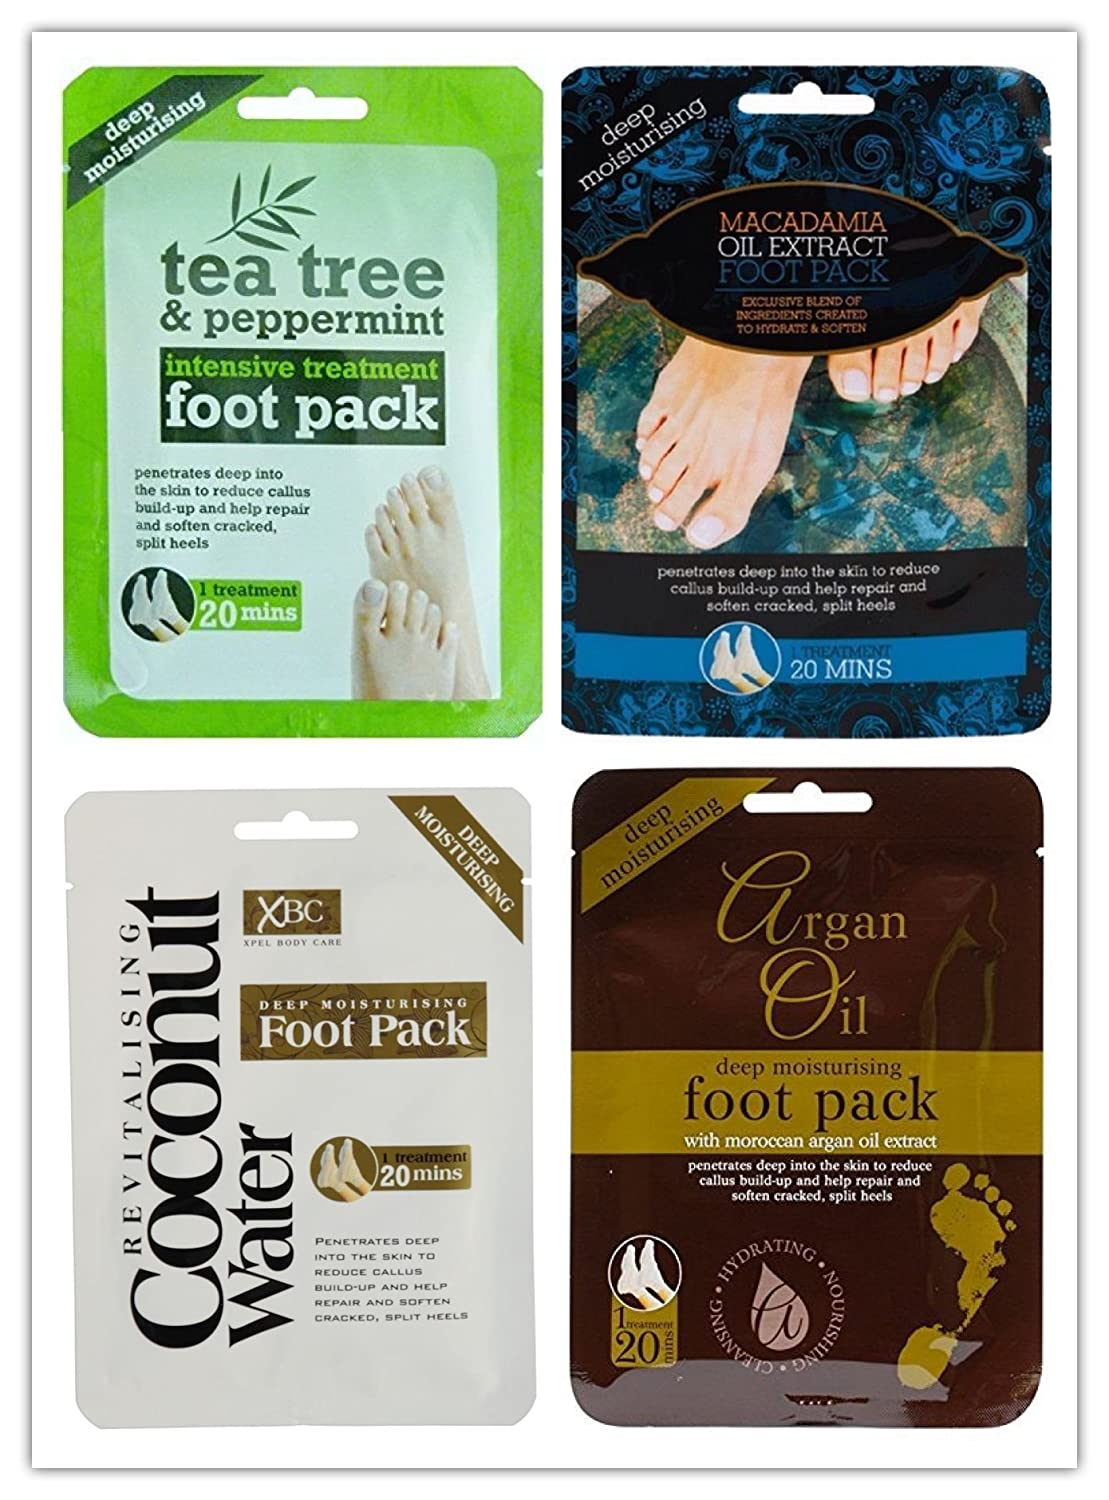 (PACK OF 4) Deep Moisturising Foot Pack Includes - (1x Macadamia Oil, 1x Argan Oil, 1x Coconut Water, 1x Tea Tree and Peppermint) Foot Pack Socks Treatment - By PAJEE ™ PAJEE TM